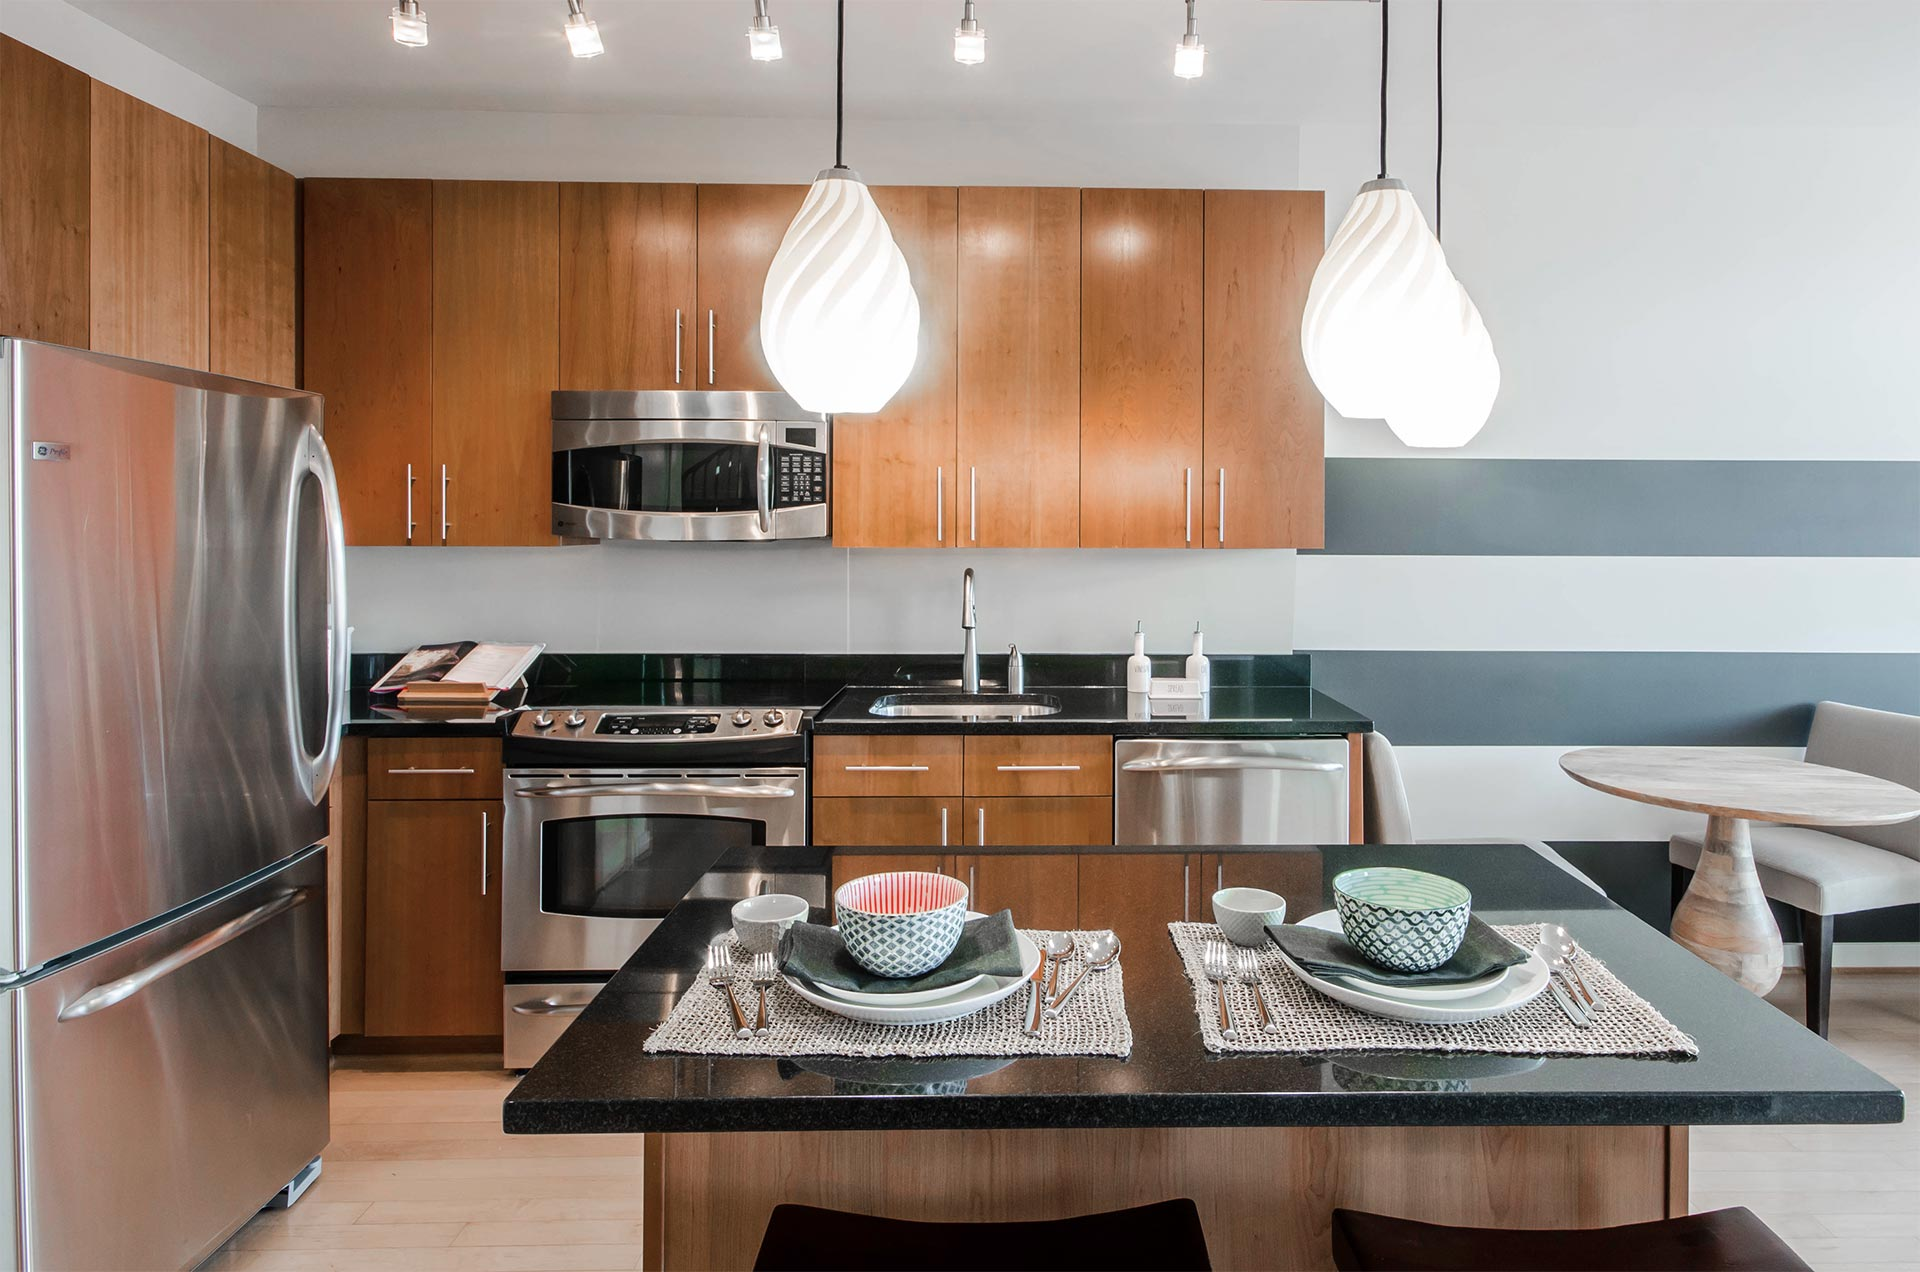 Straight on view of model unit kitchen with stainless steel fridge, oven, microwave, dishwasher and sink, and kitchen island